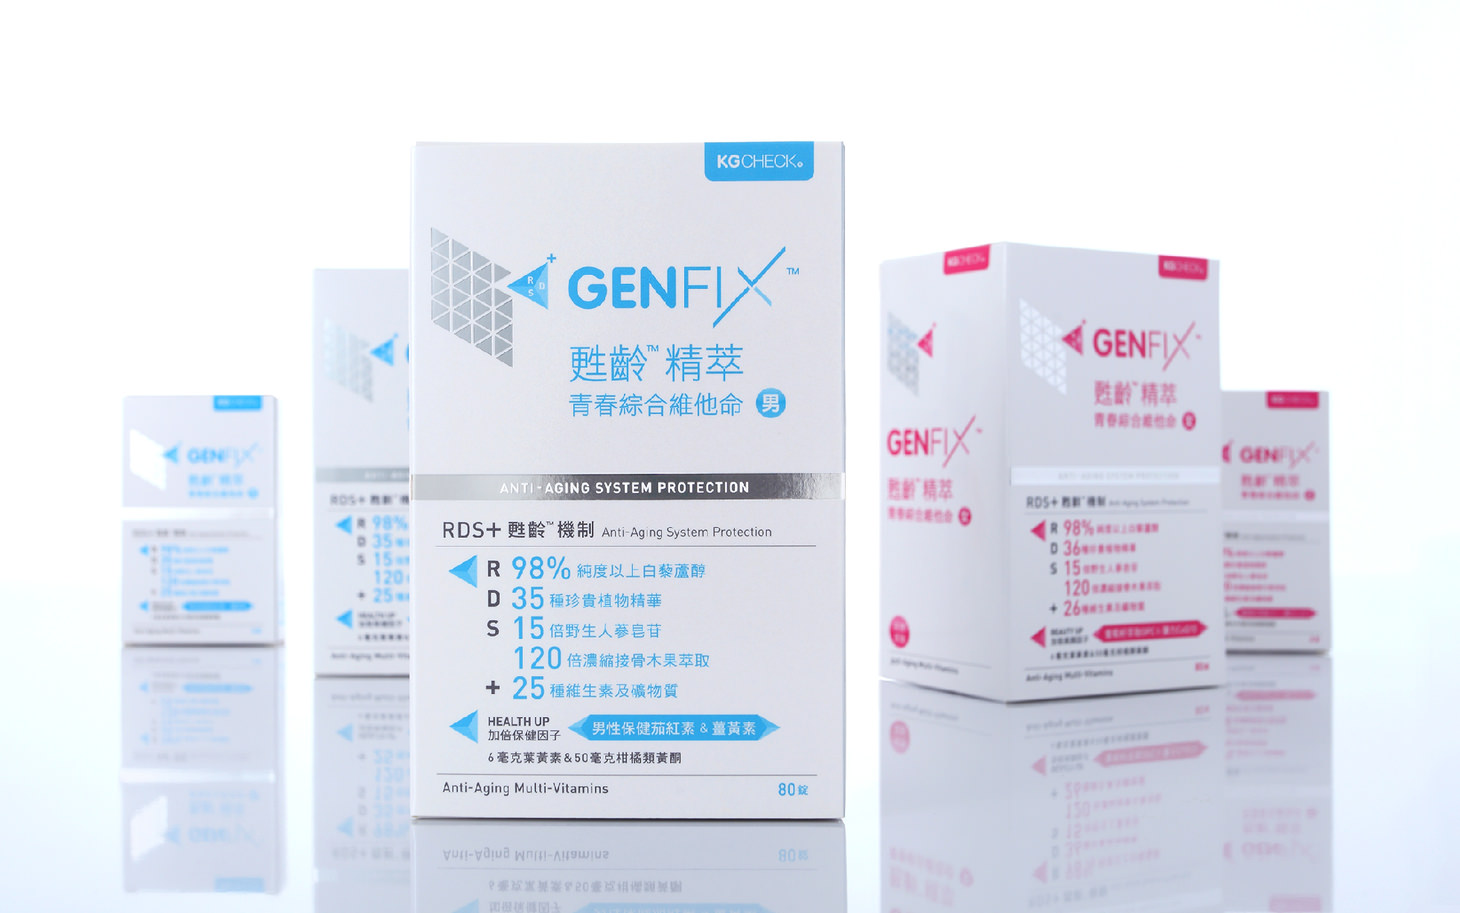 LHF_GENFIX_packaging_20150212_3-04.jpg